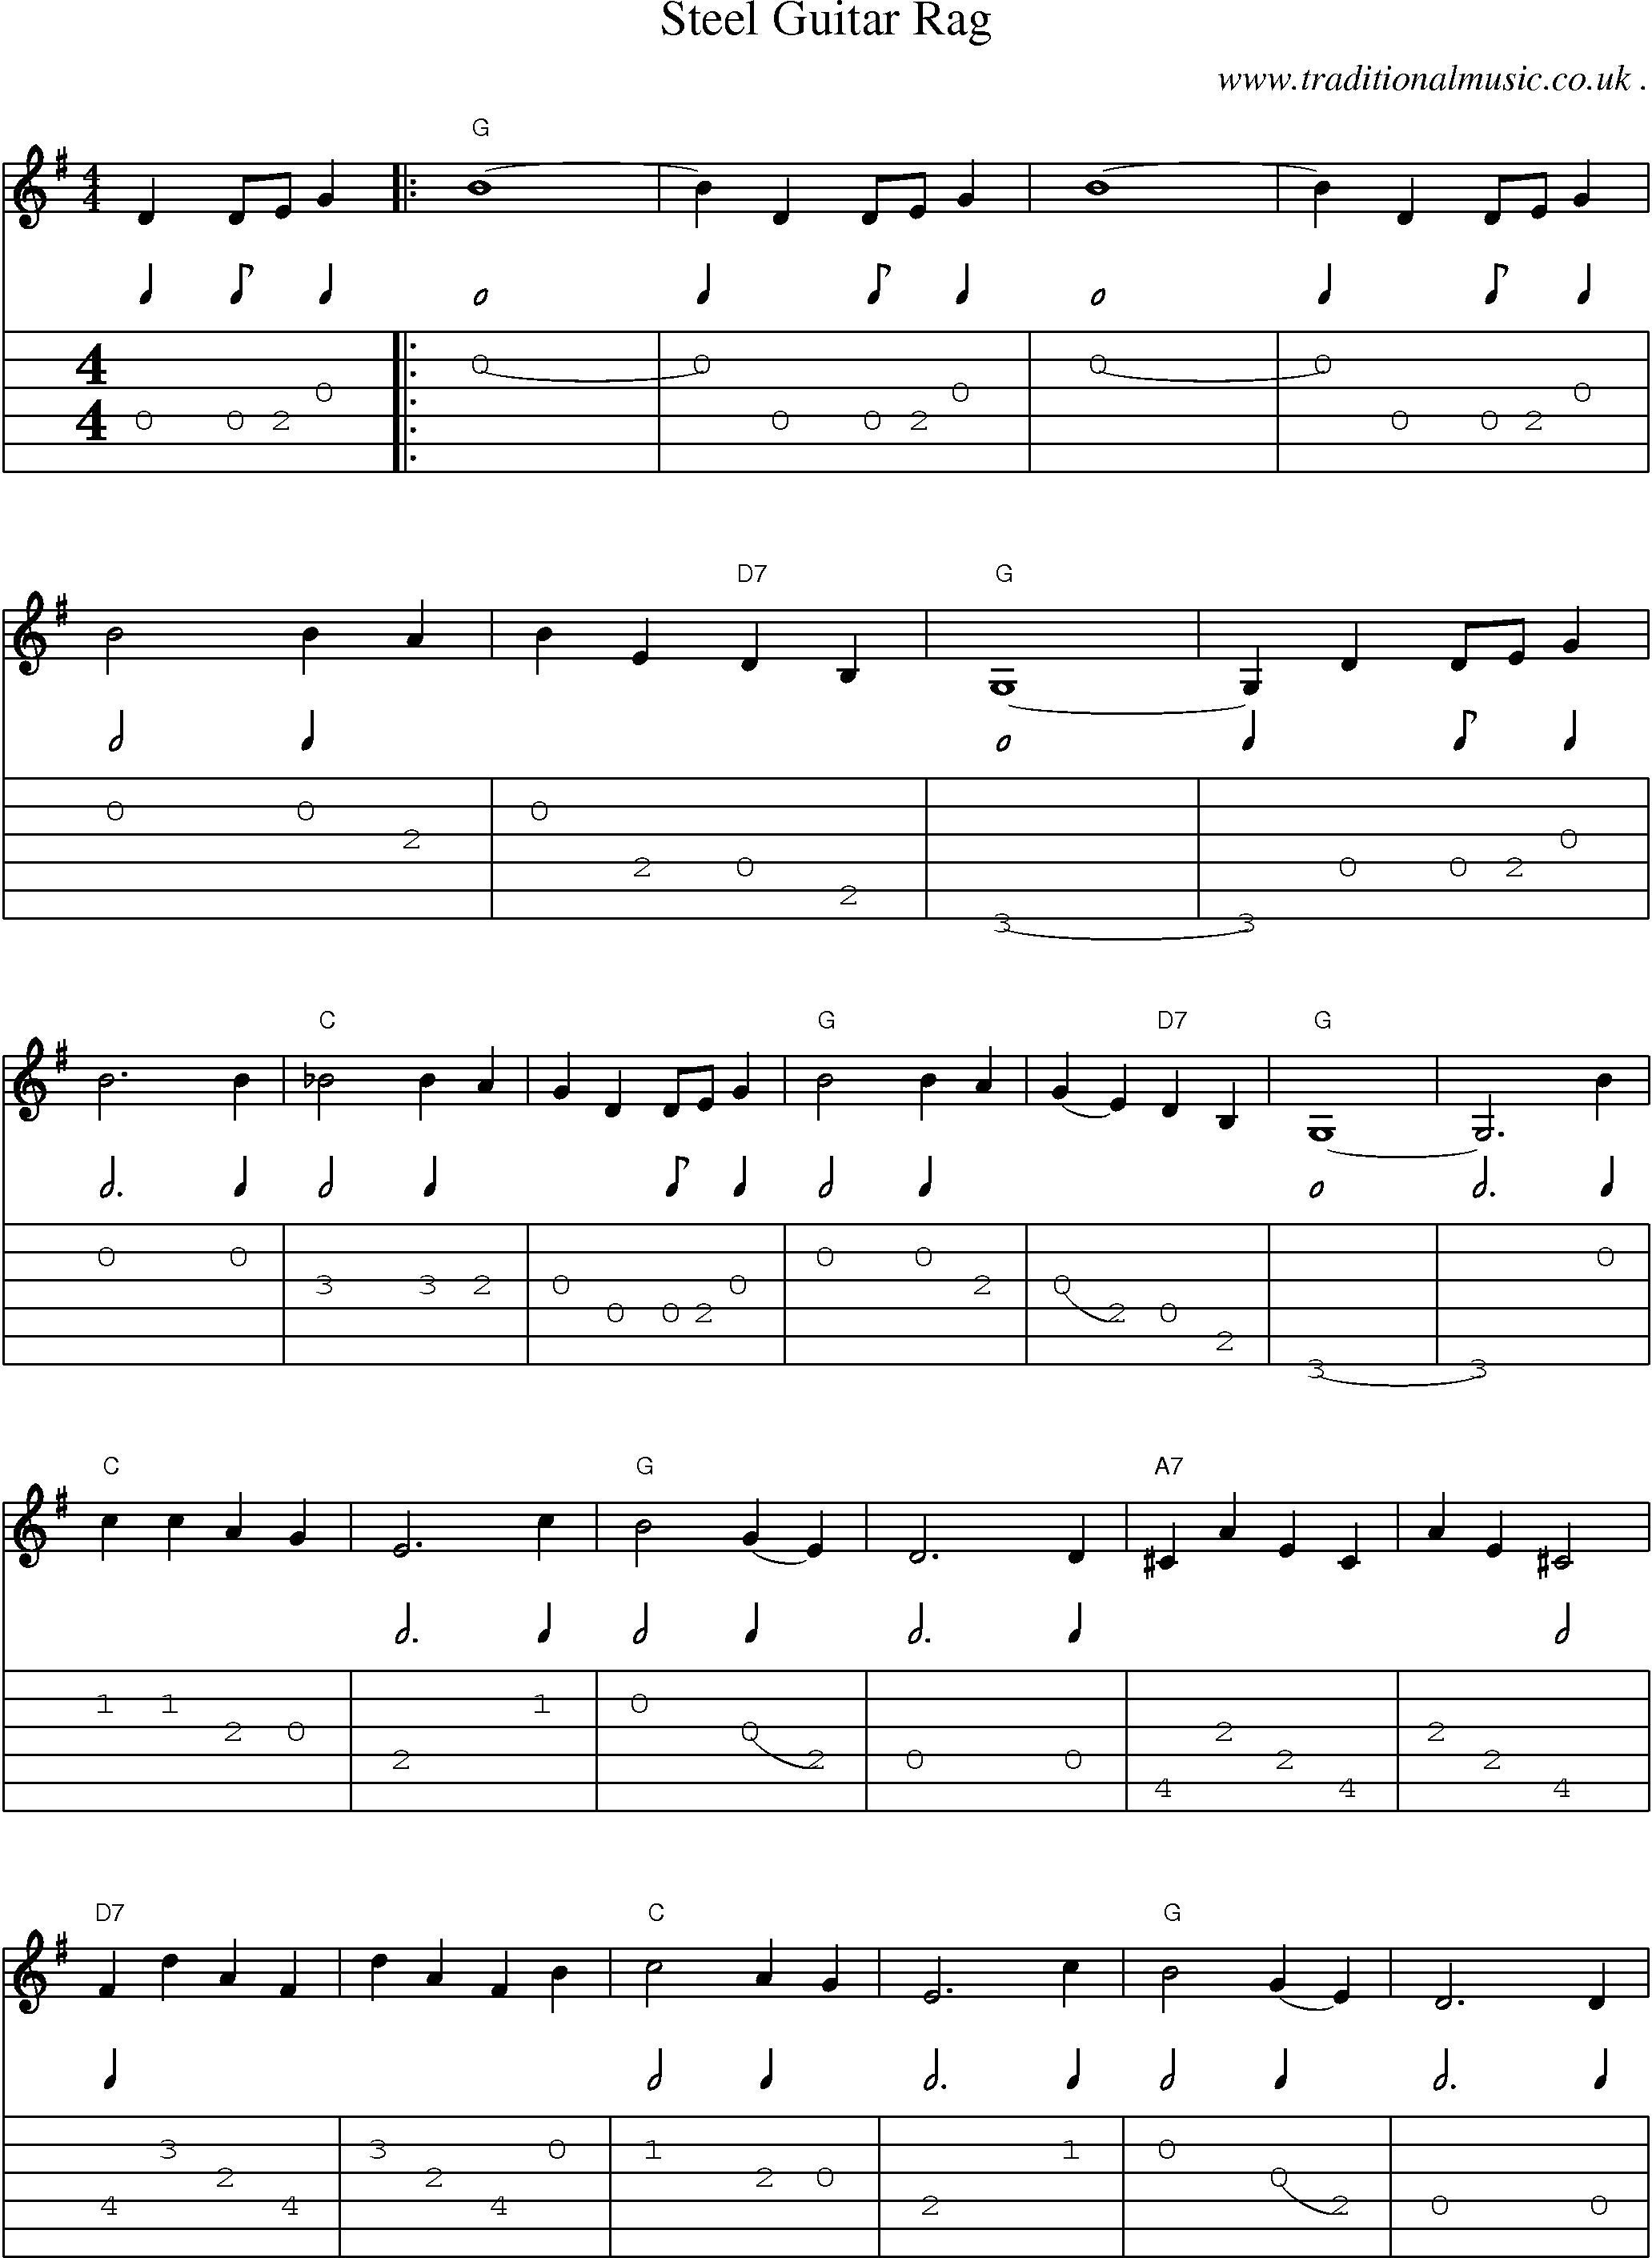 Common session tunes, Scores and Tabs for Guitar - Steel Guitar Rag